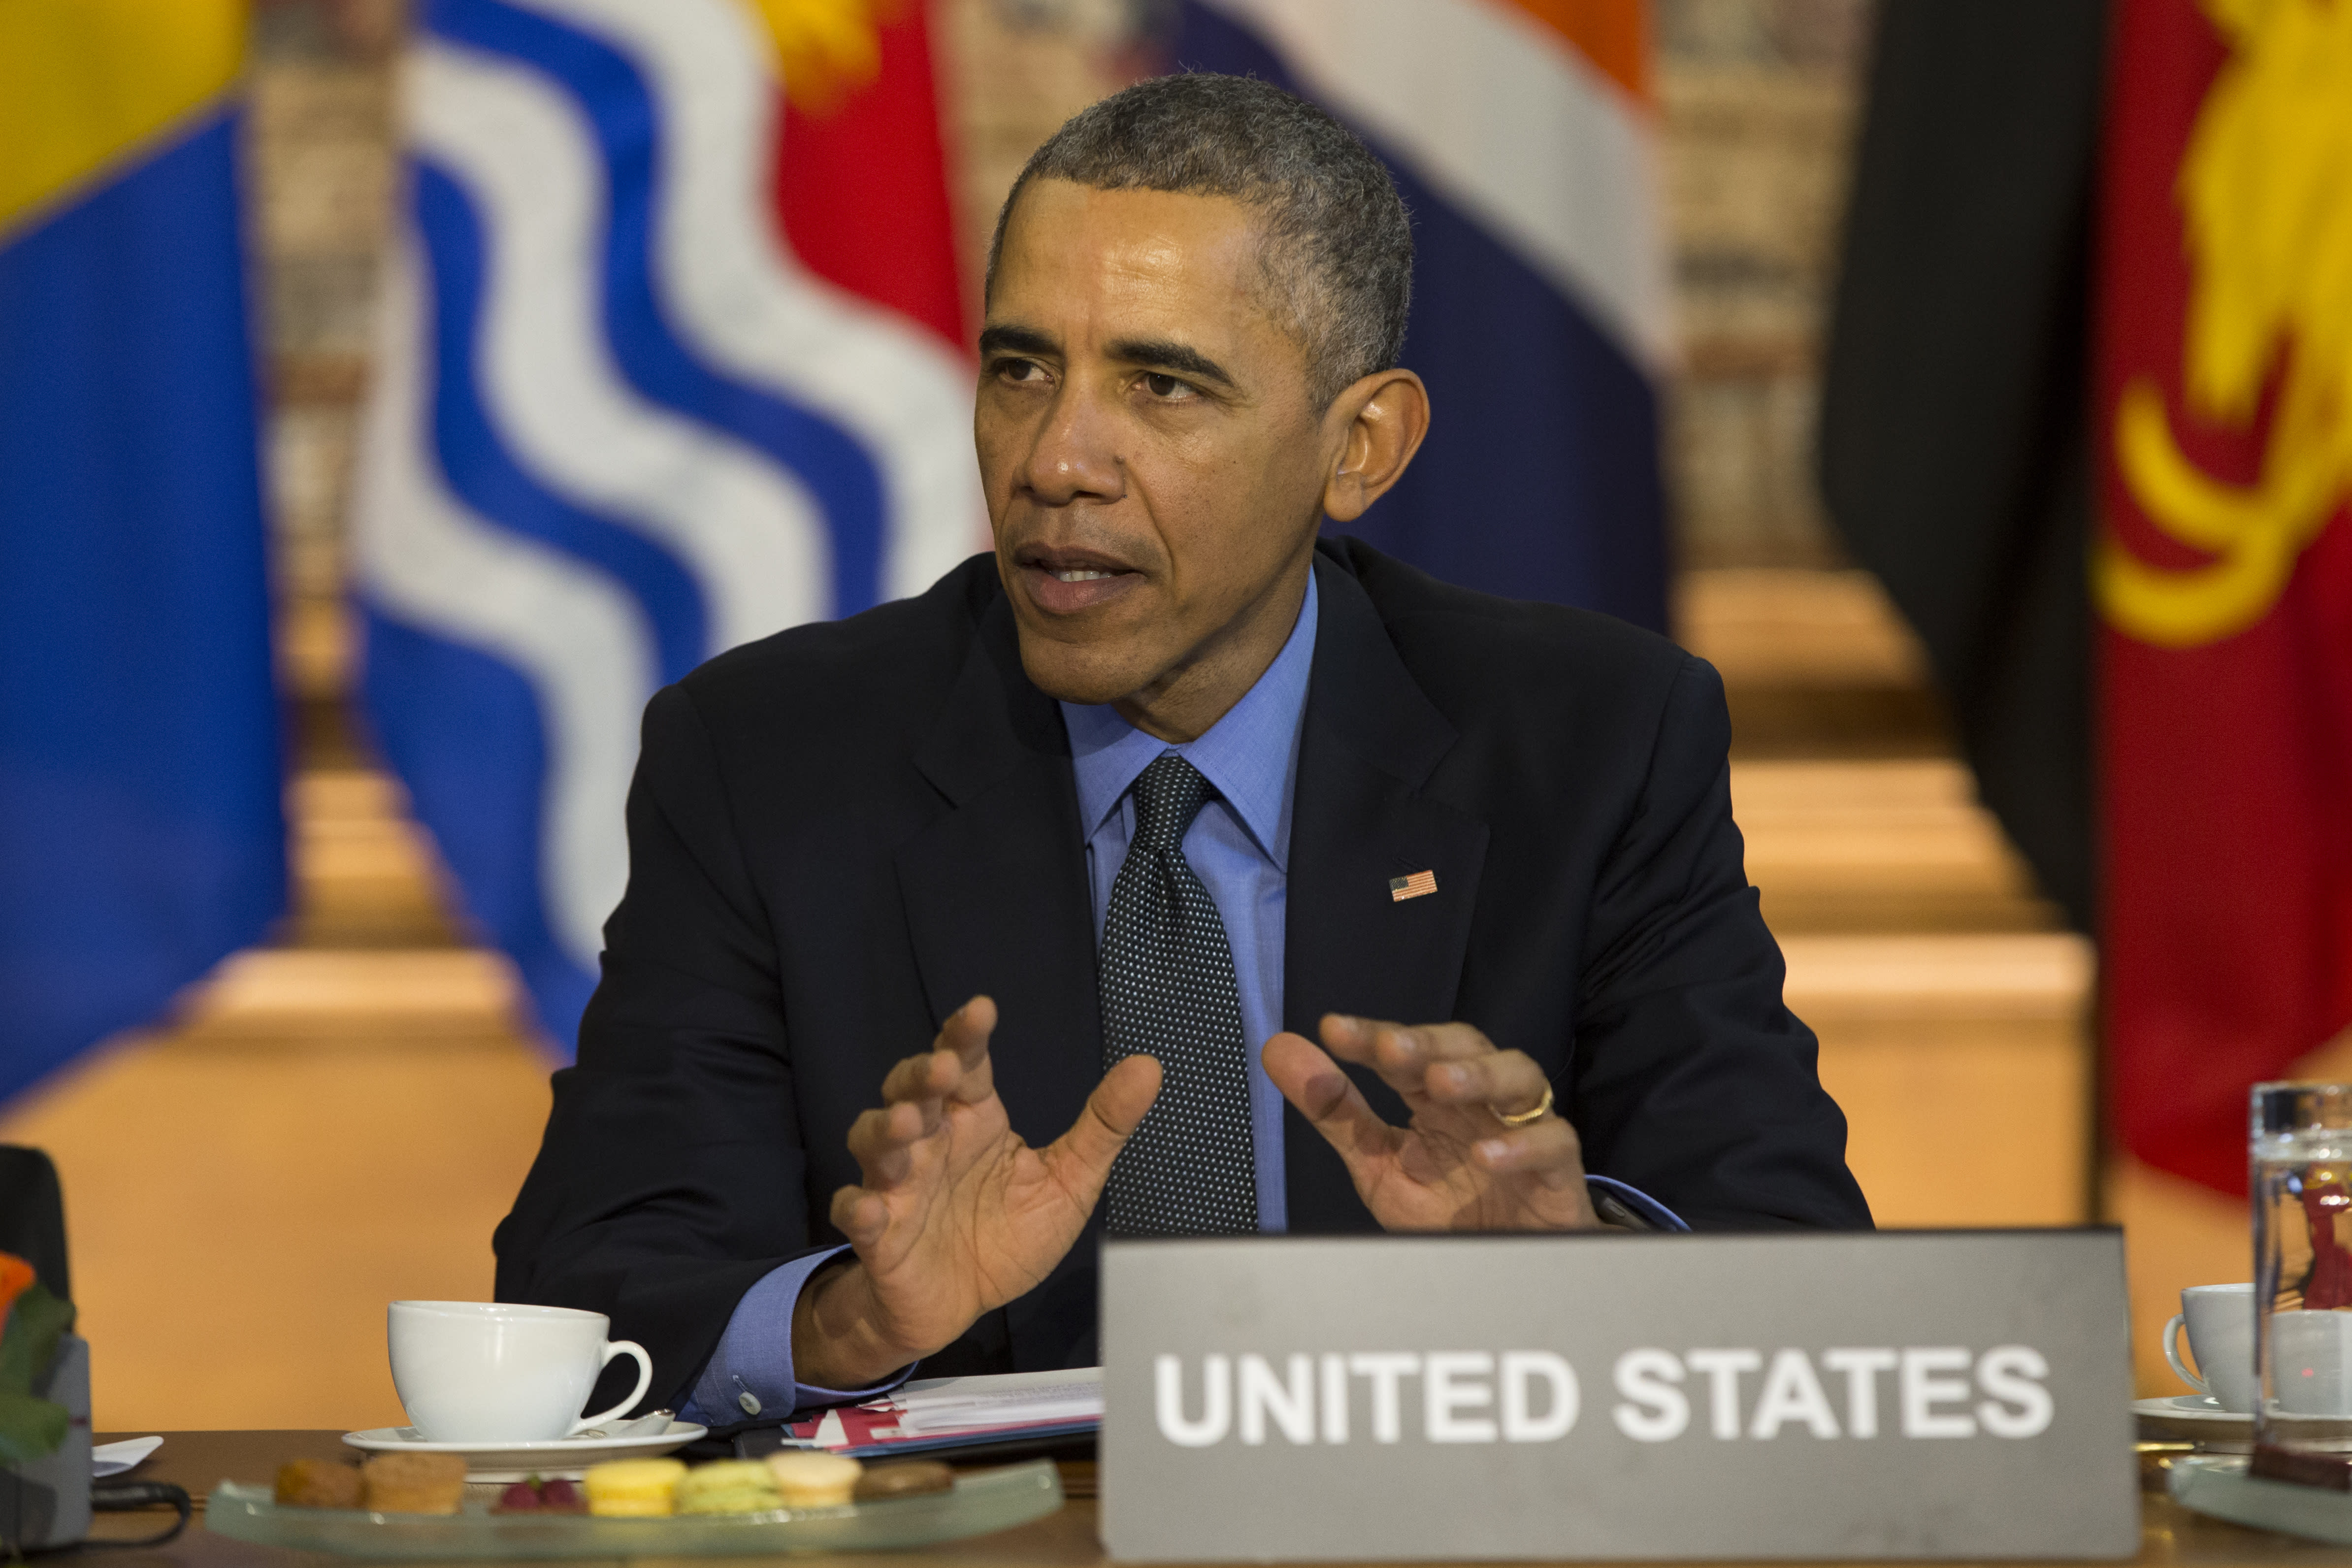 The Latest: Obama warns climate change will create refugees